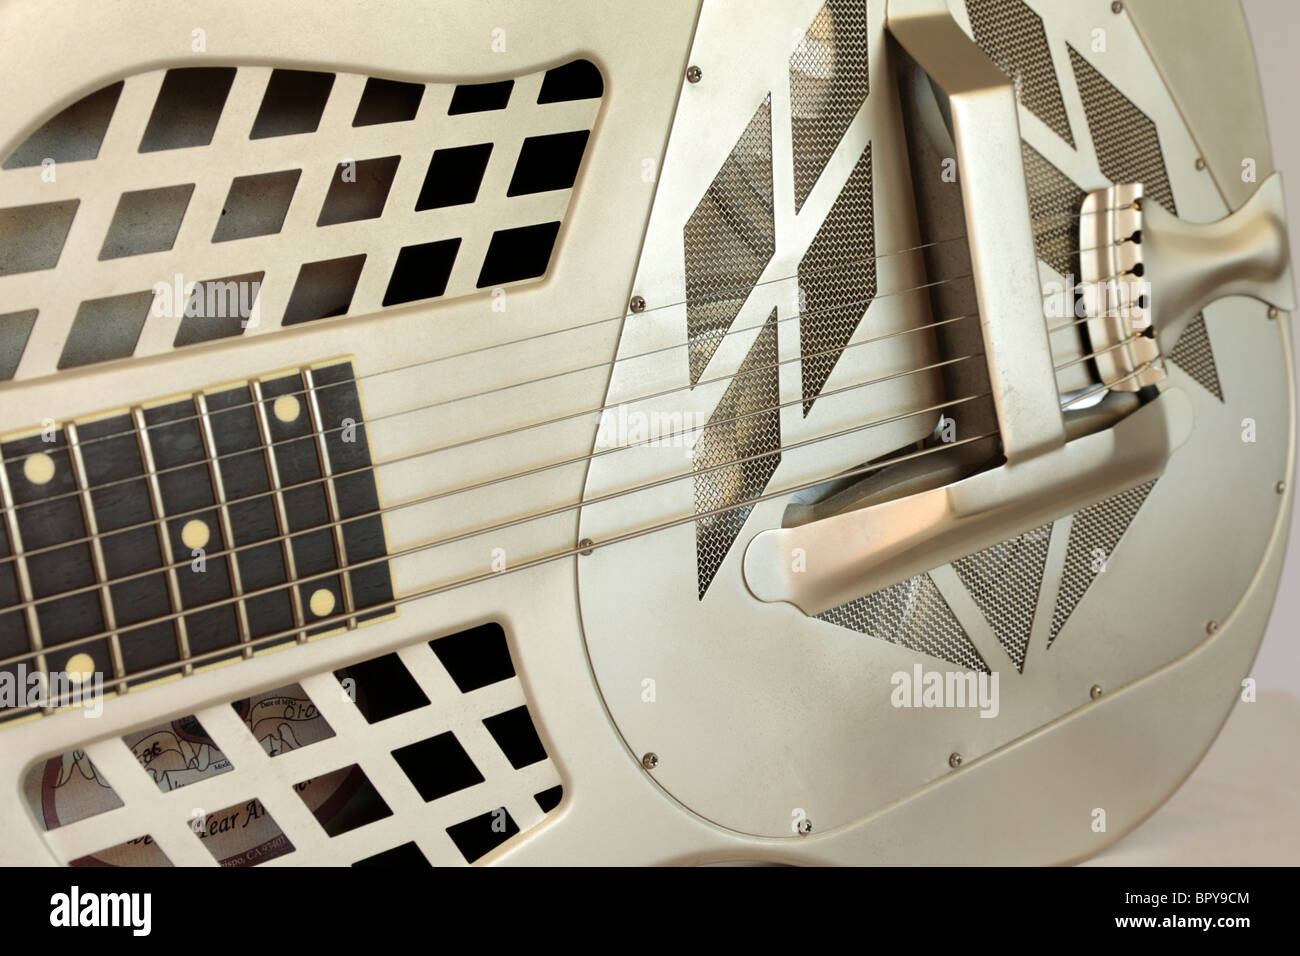 A National Vintage Tricone guitar number 1586(13376 on machine head) built 01 - 08 in the USA owned by Adam Gough - Stock Image